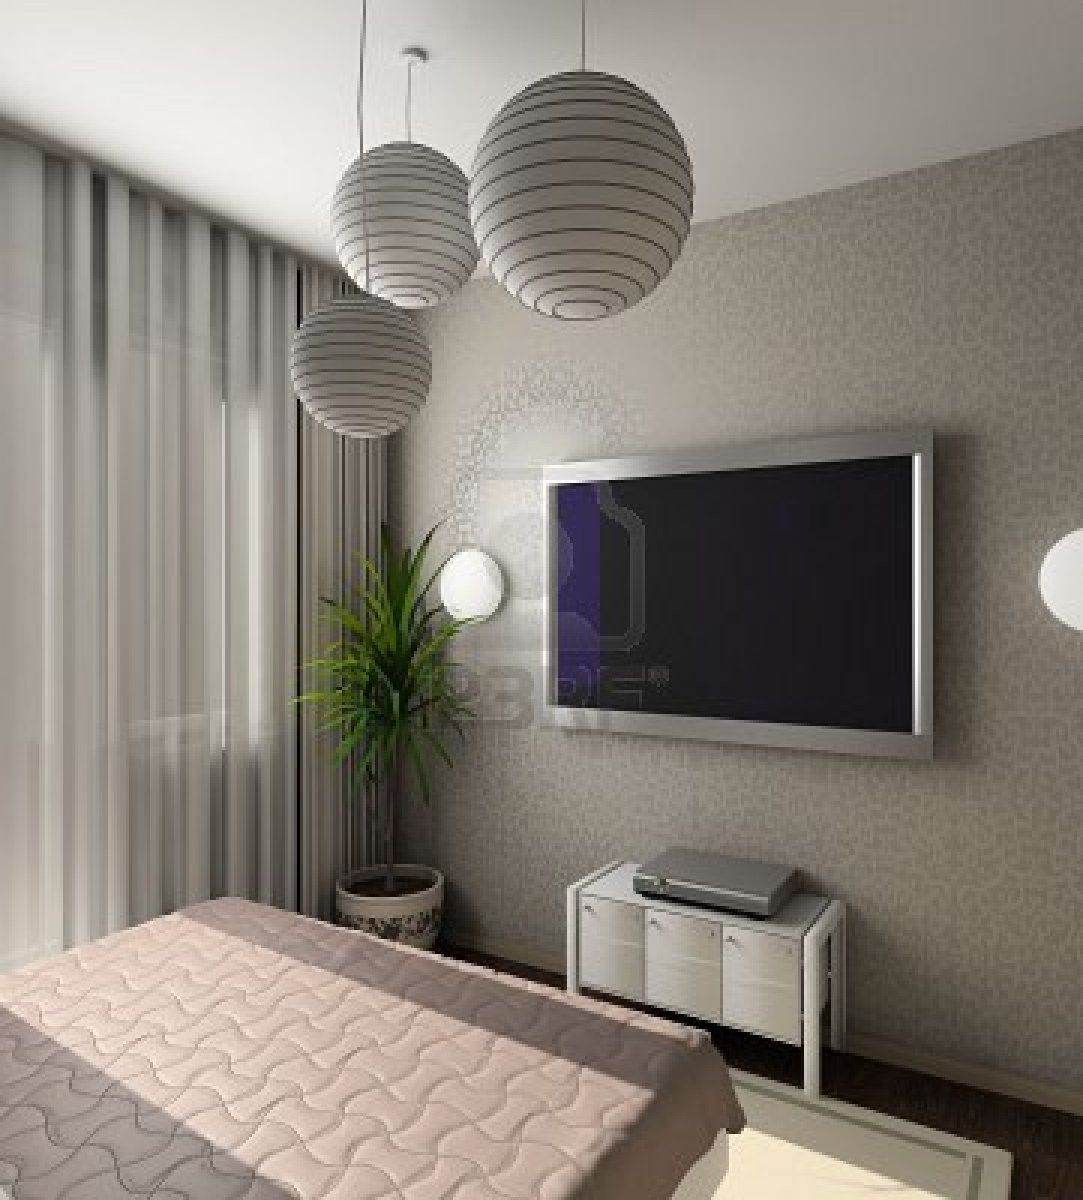 bedroom tv table design | design ideas 2017-2018 | pinterest